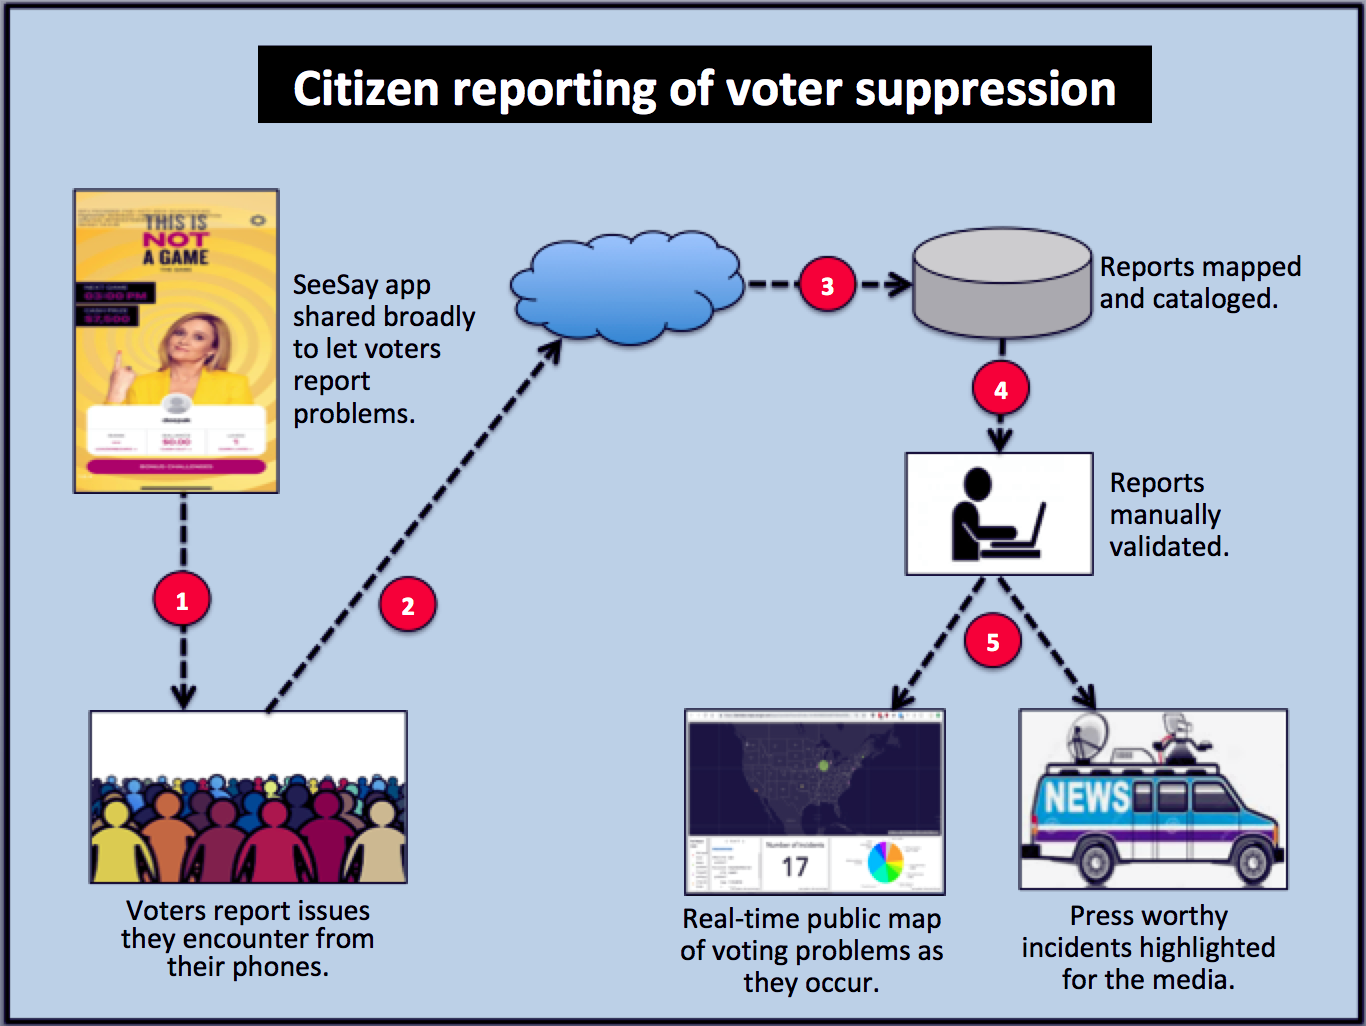 Citizen reporting of voter suppression incidents with See Say